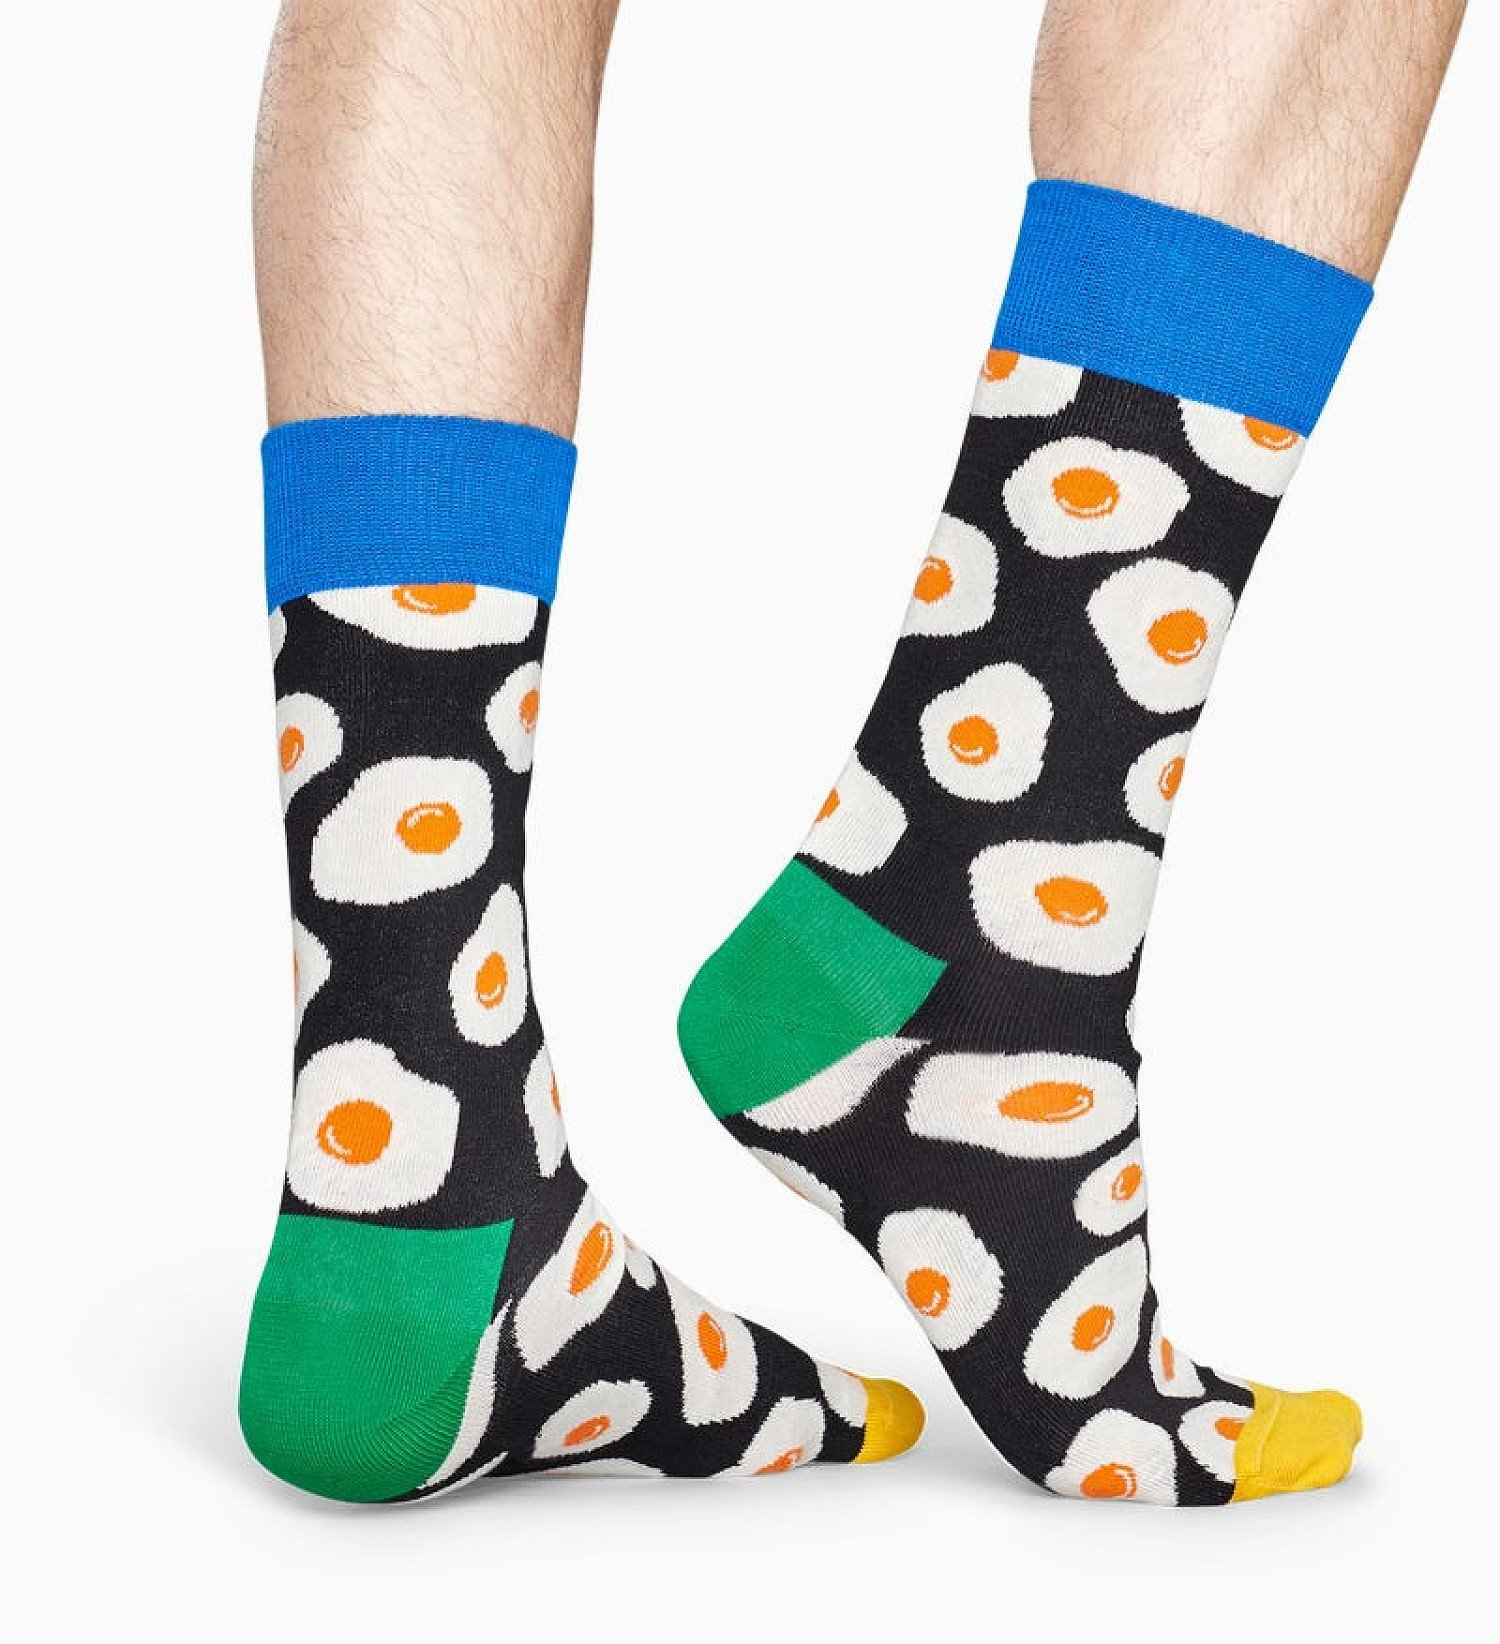 HAPPY EASTER - Sunny Side Up Sock: £11.95!